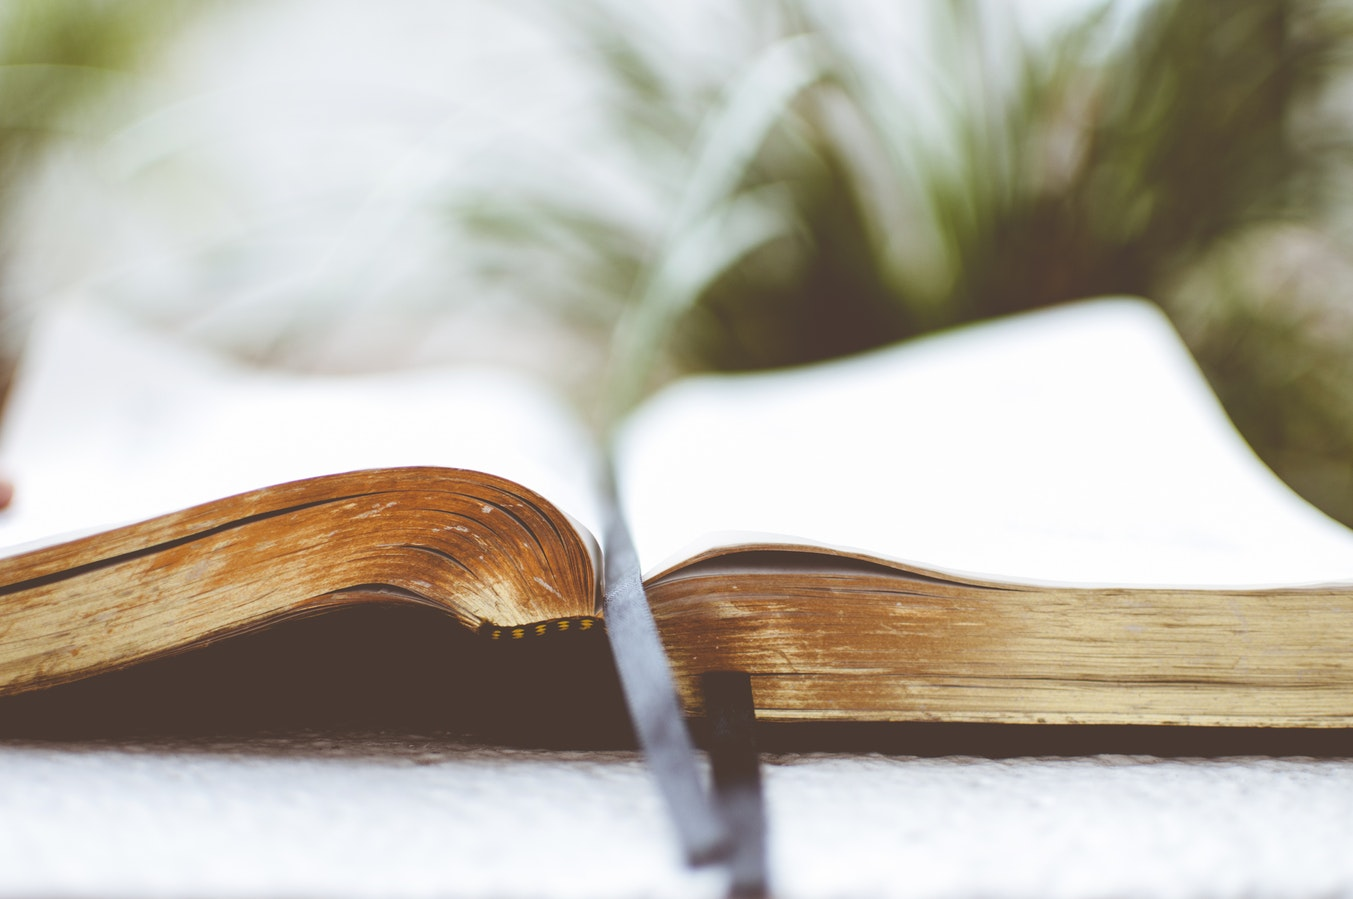 An open bible with a bookmark in it. Seniors sometimes turn to church for social engagement as they can teach classes or become involved in group classes.